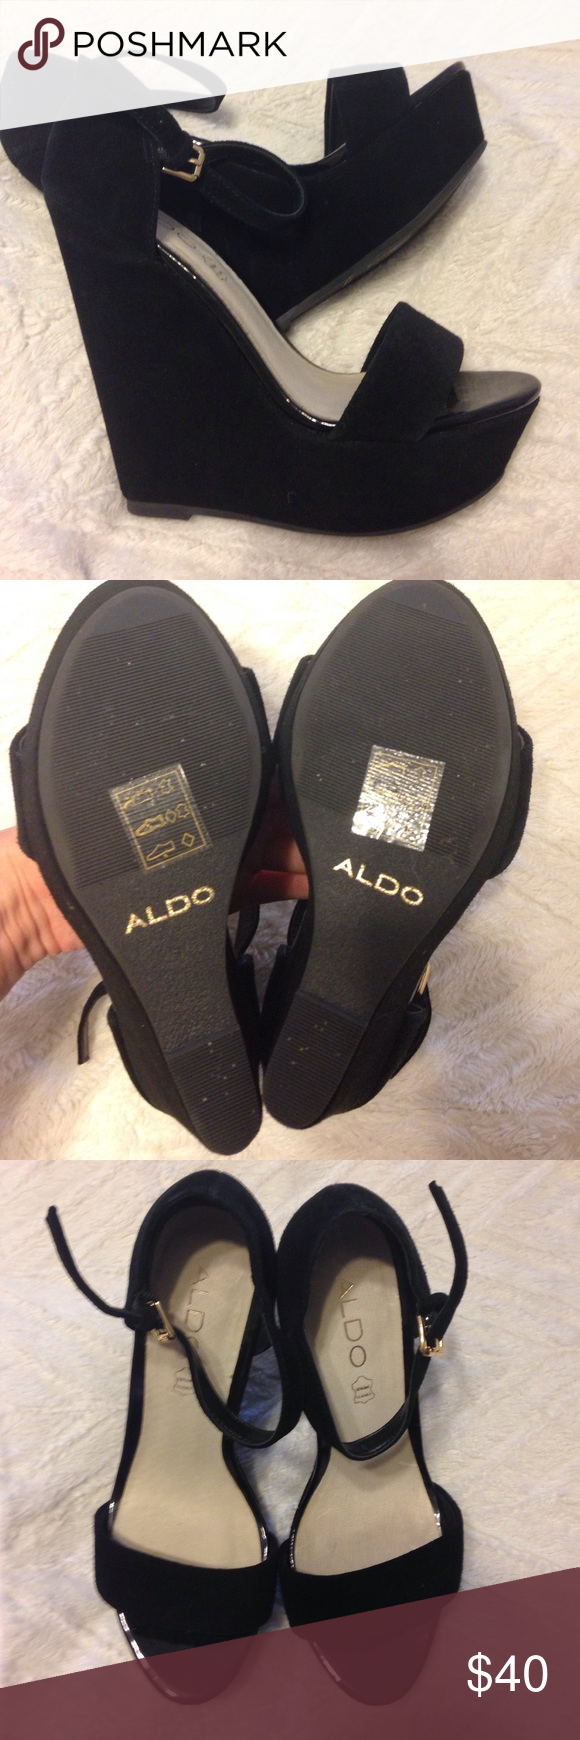 ALDO Wedges Super cute black wedges from Aldo! Worn once, still in great condition! They run a little small, size 7 but probably fits closer to a 6. The sole is peeling up a small bit and the back heel is a tiny bit worn but other than that they are great. Aldo Shoes Wedges